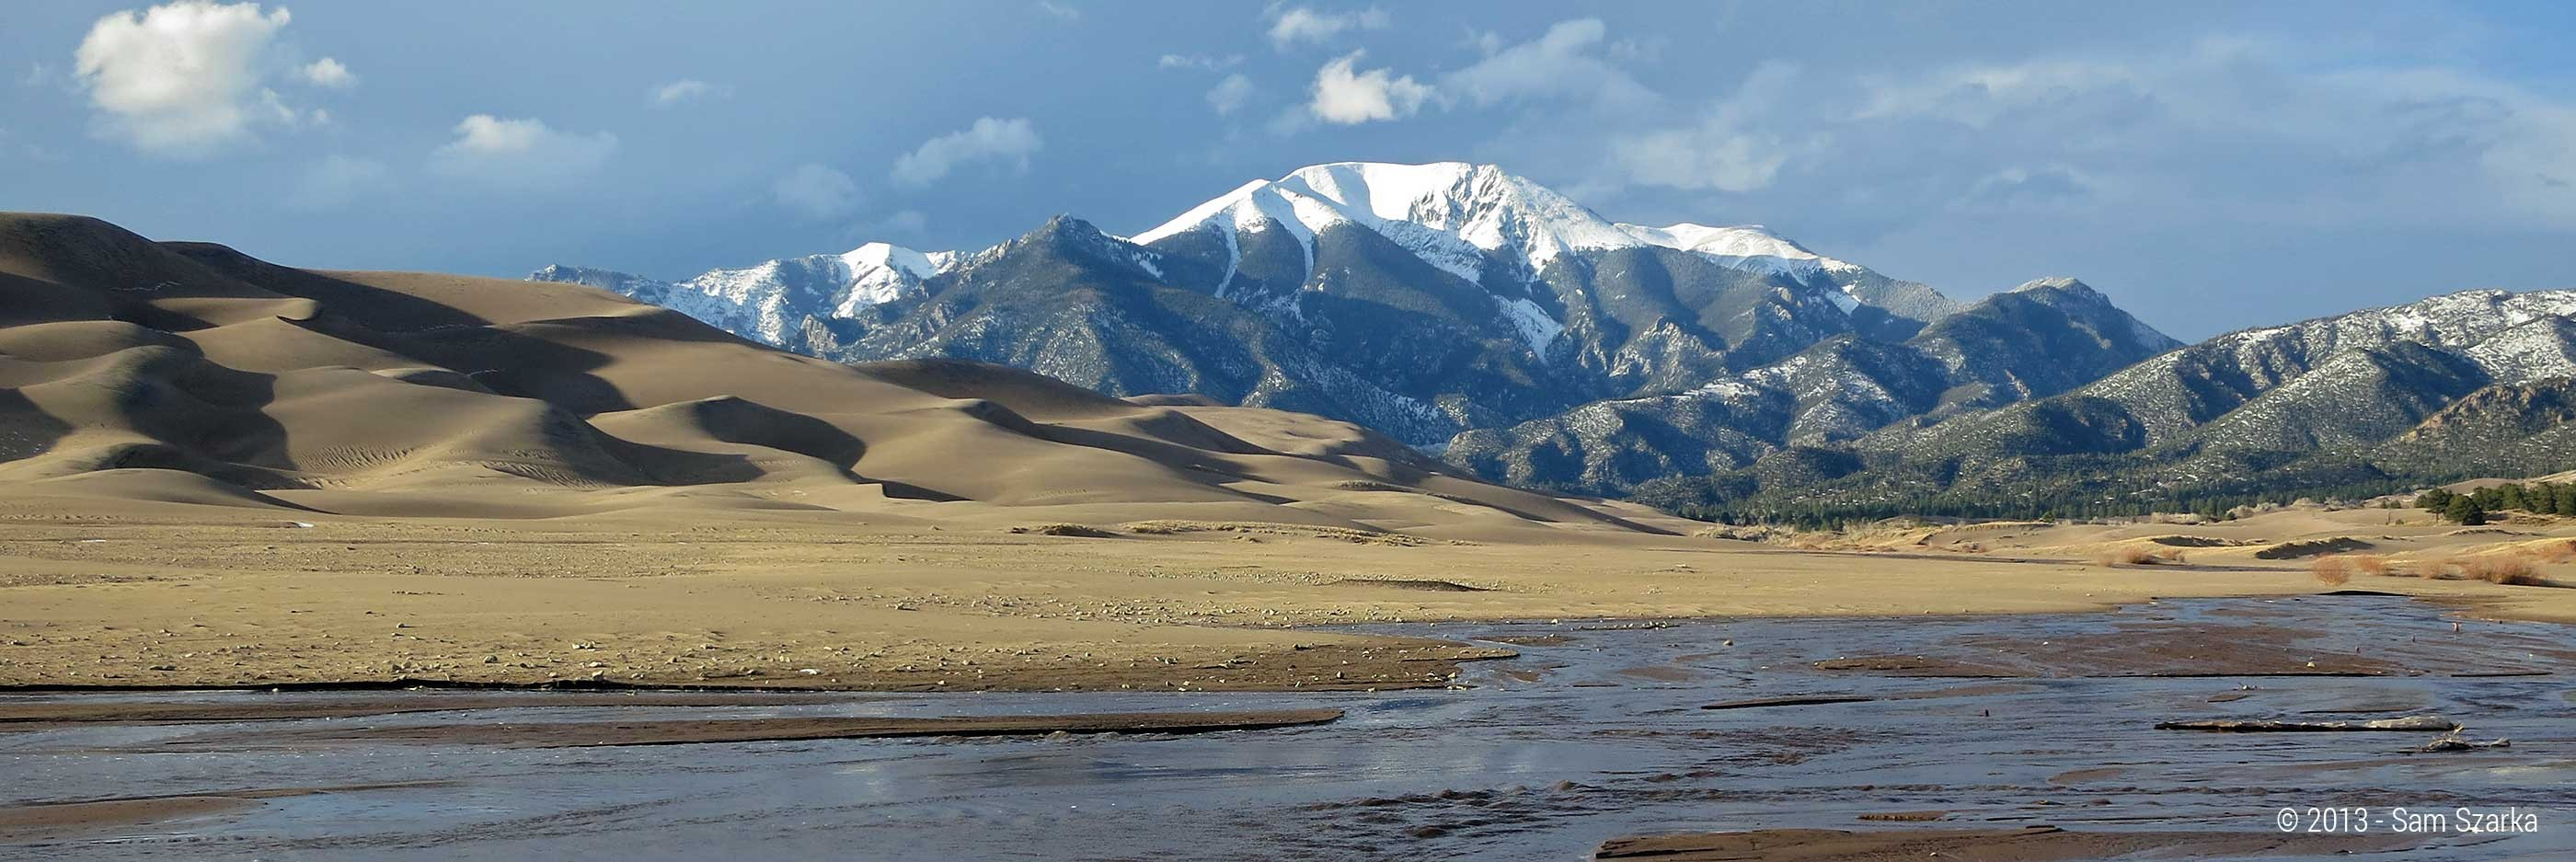 Great Sand Dunes National Park Preserve Colorados Wild Areas